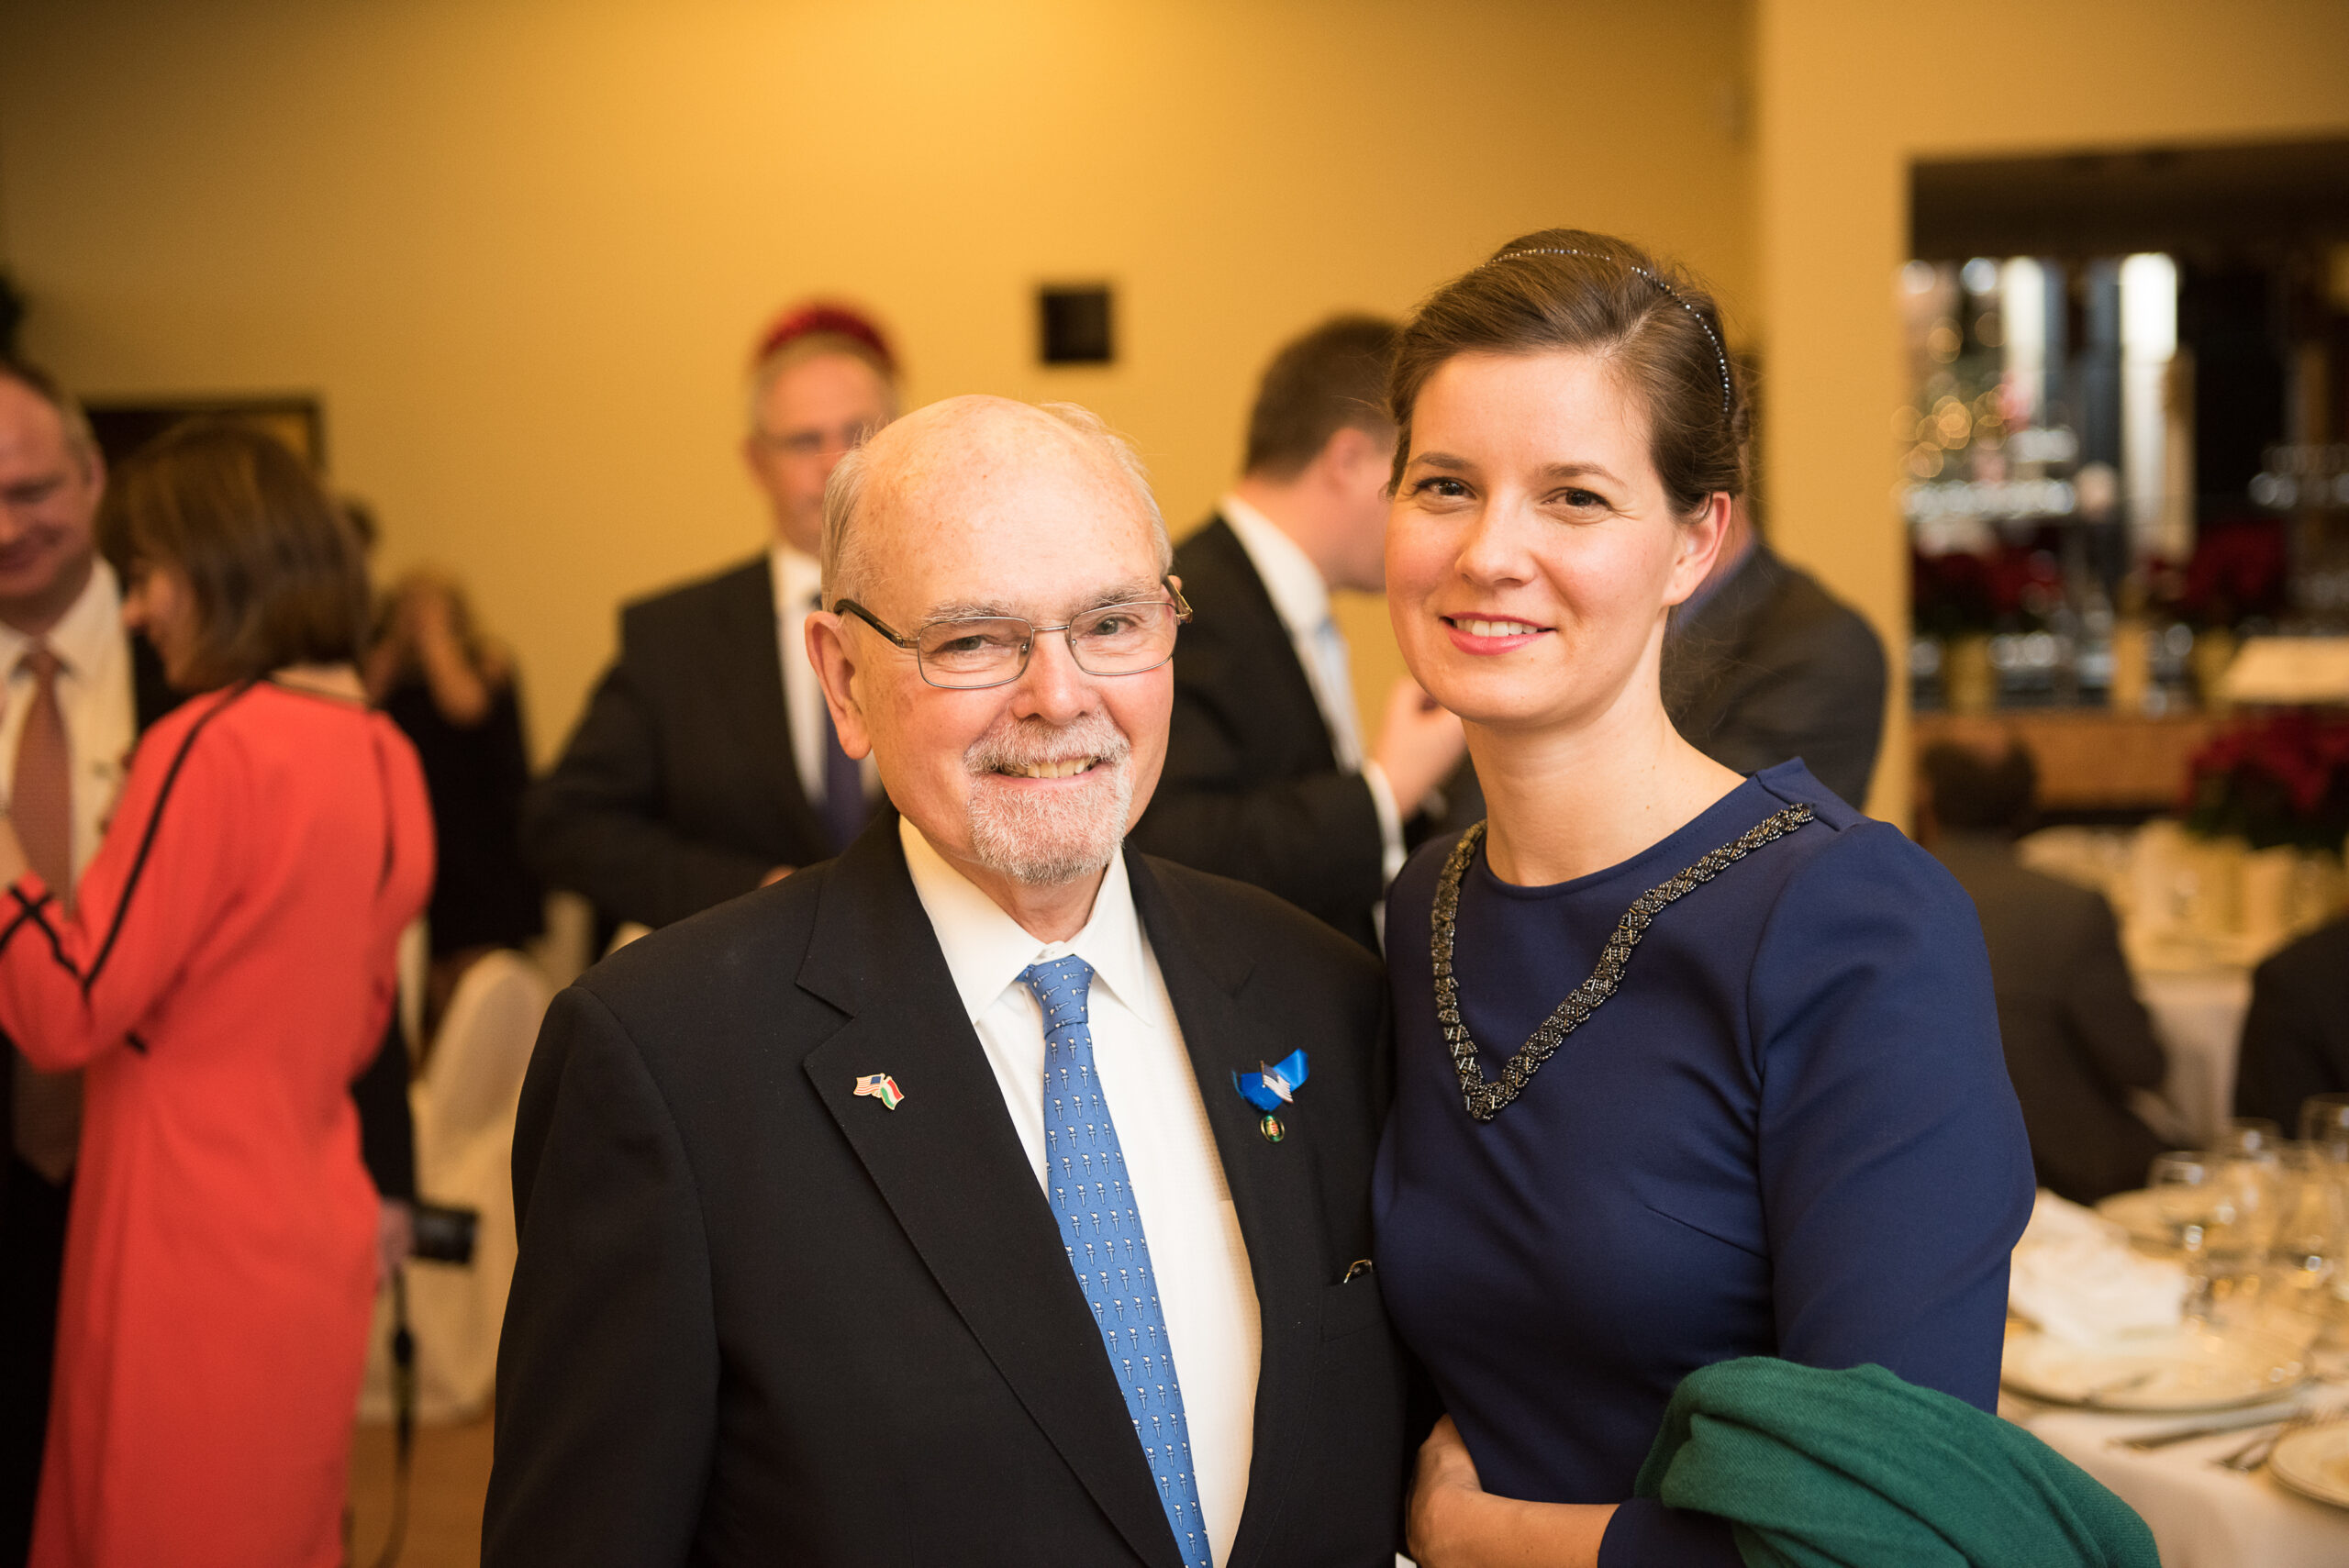 Dr. Lee Edwards (Chairman of the Victims of Communism Memorial Foundation) and Mrs. Anna Smith Lacey (Executive Director of The Hungary Initiatives Foundation)